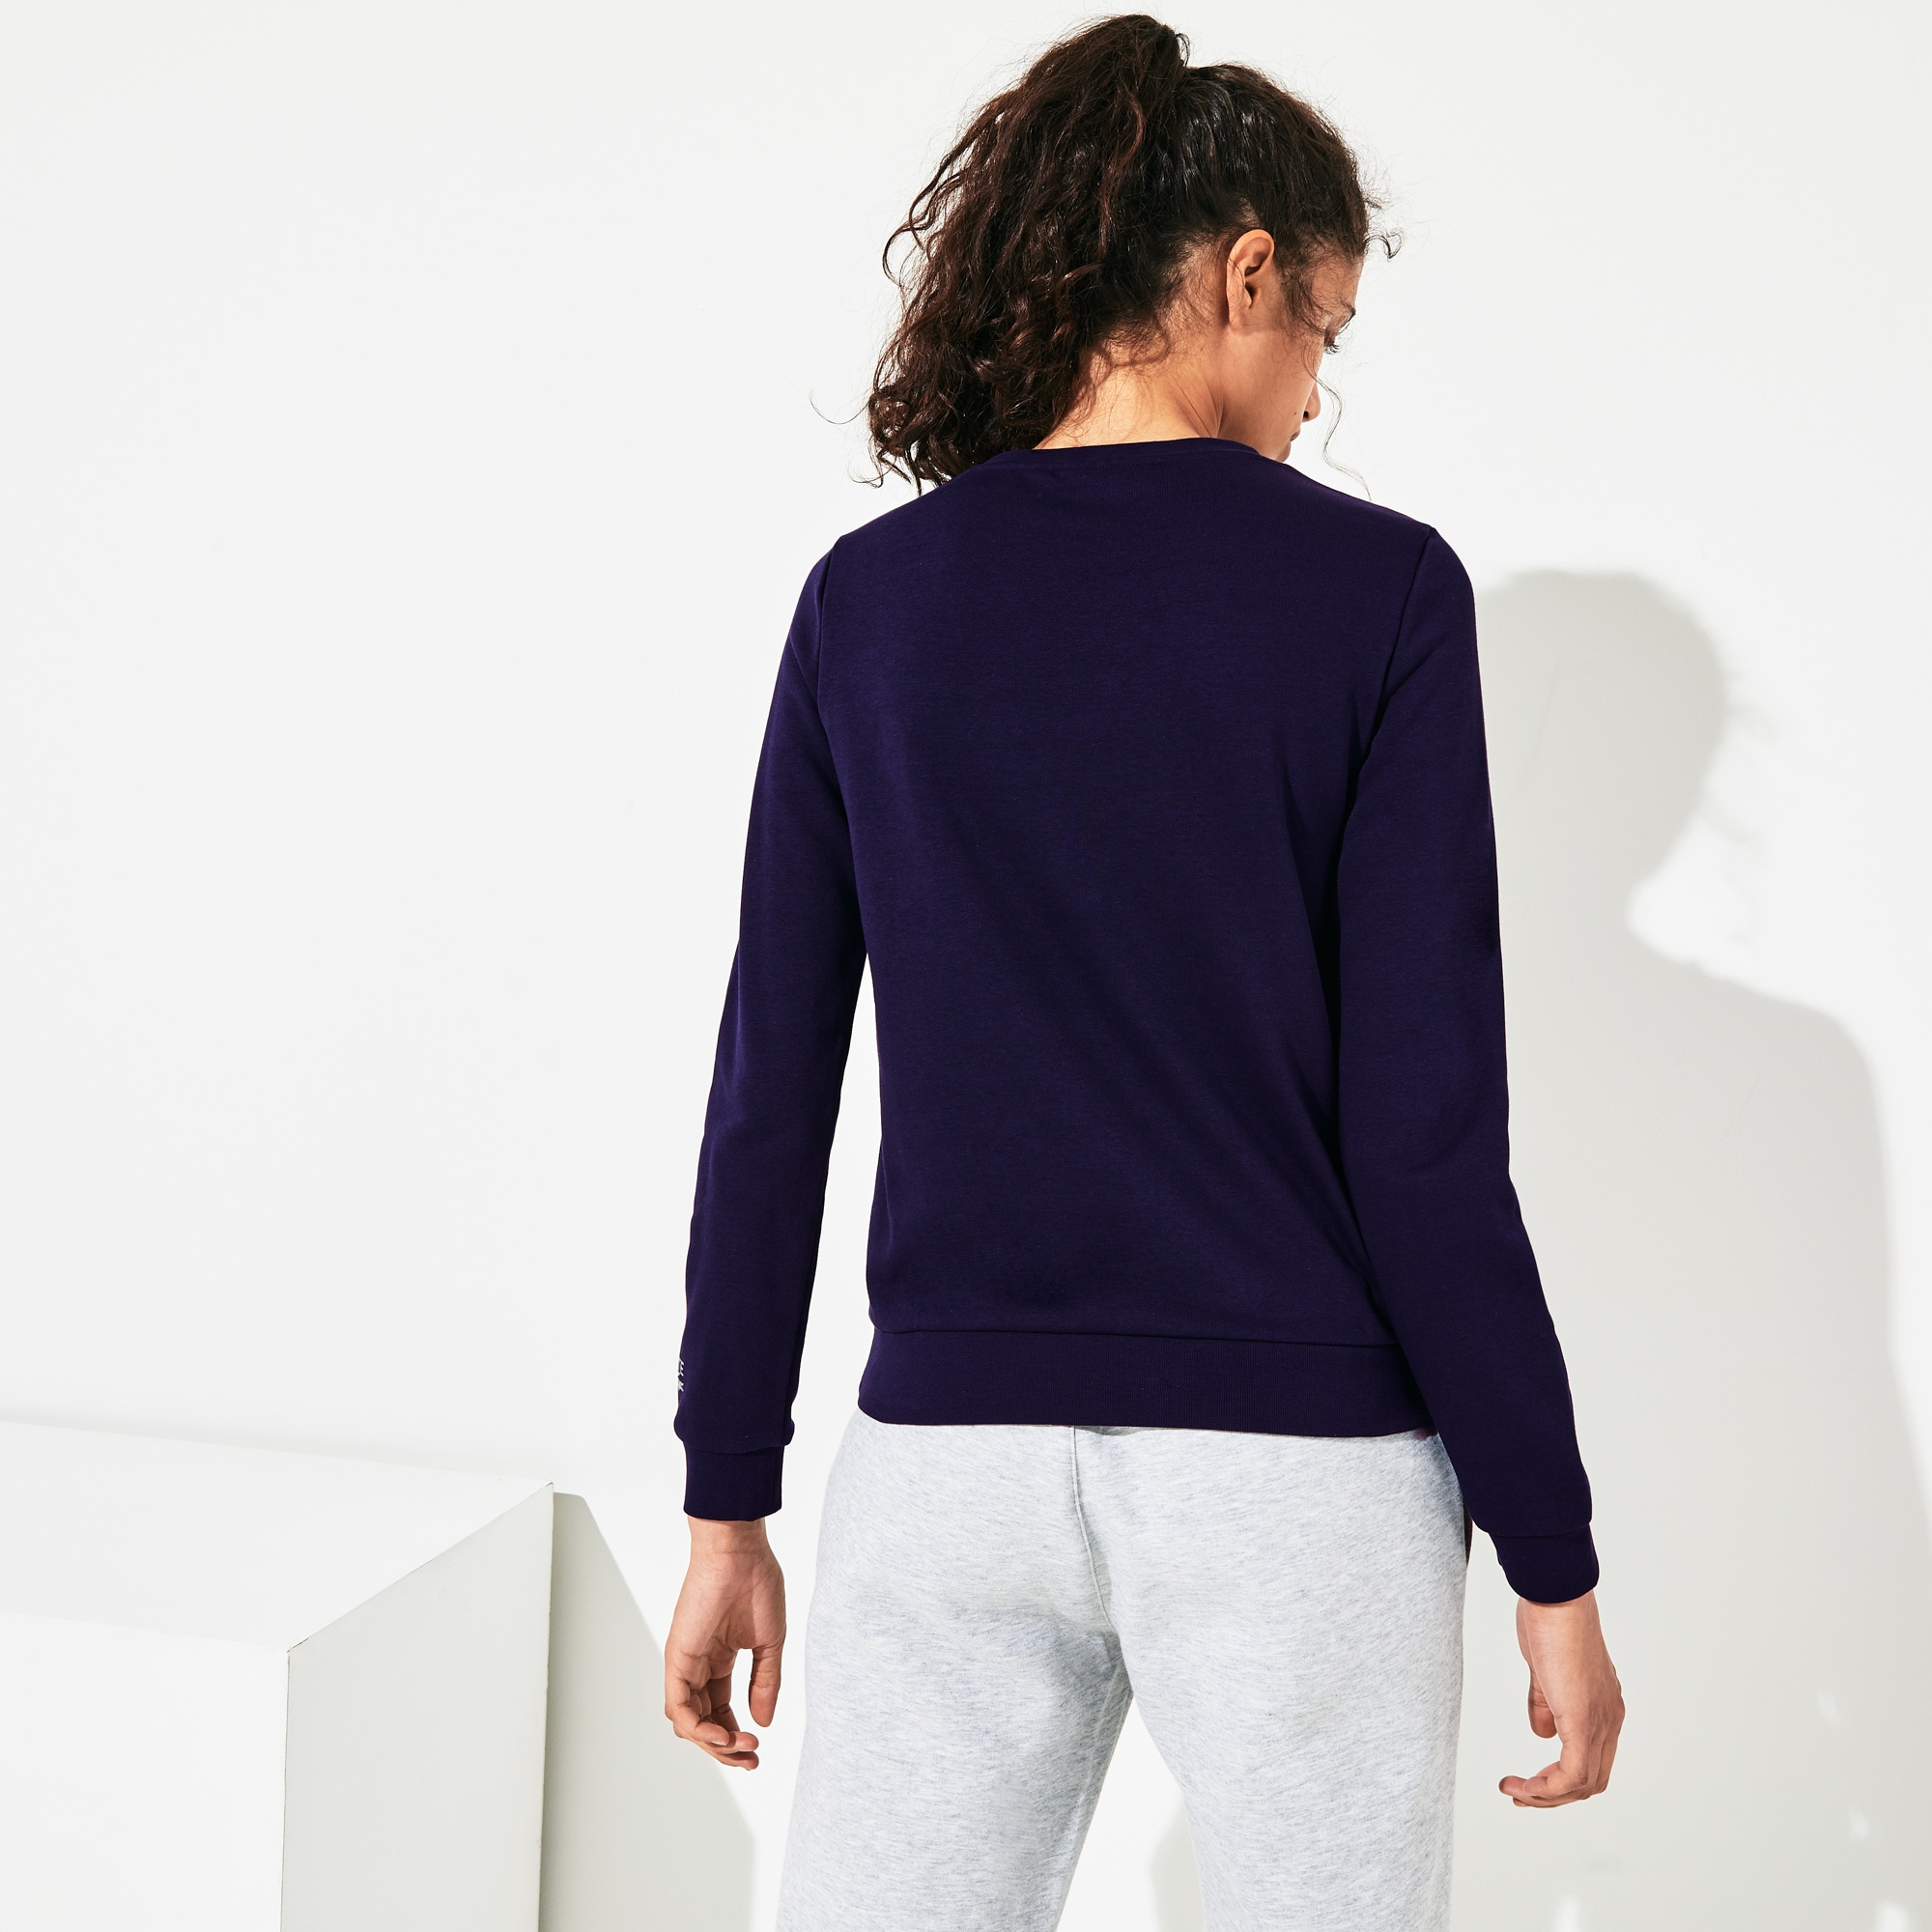 Women's Lacoste SPORT Tennis Cotton Fleece Sweatshirt